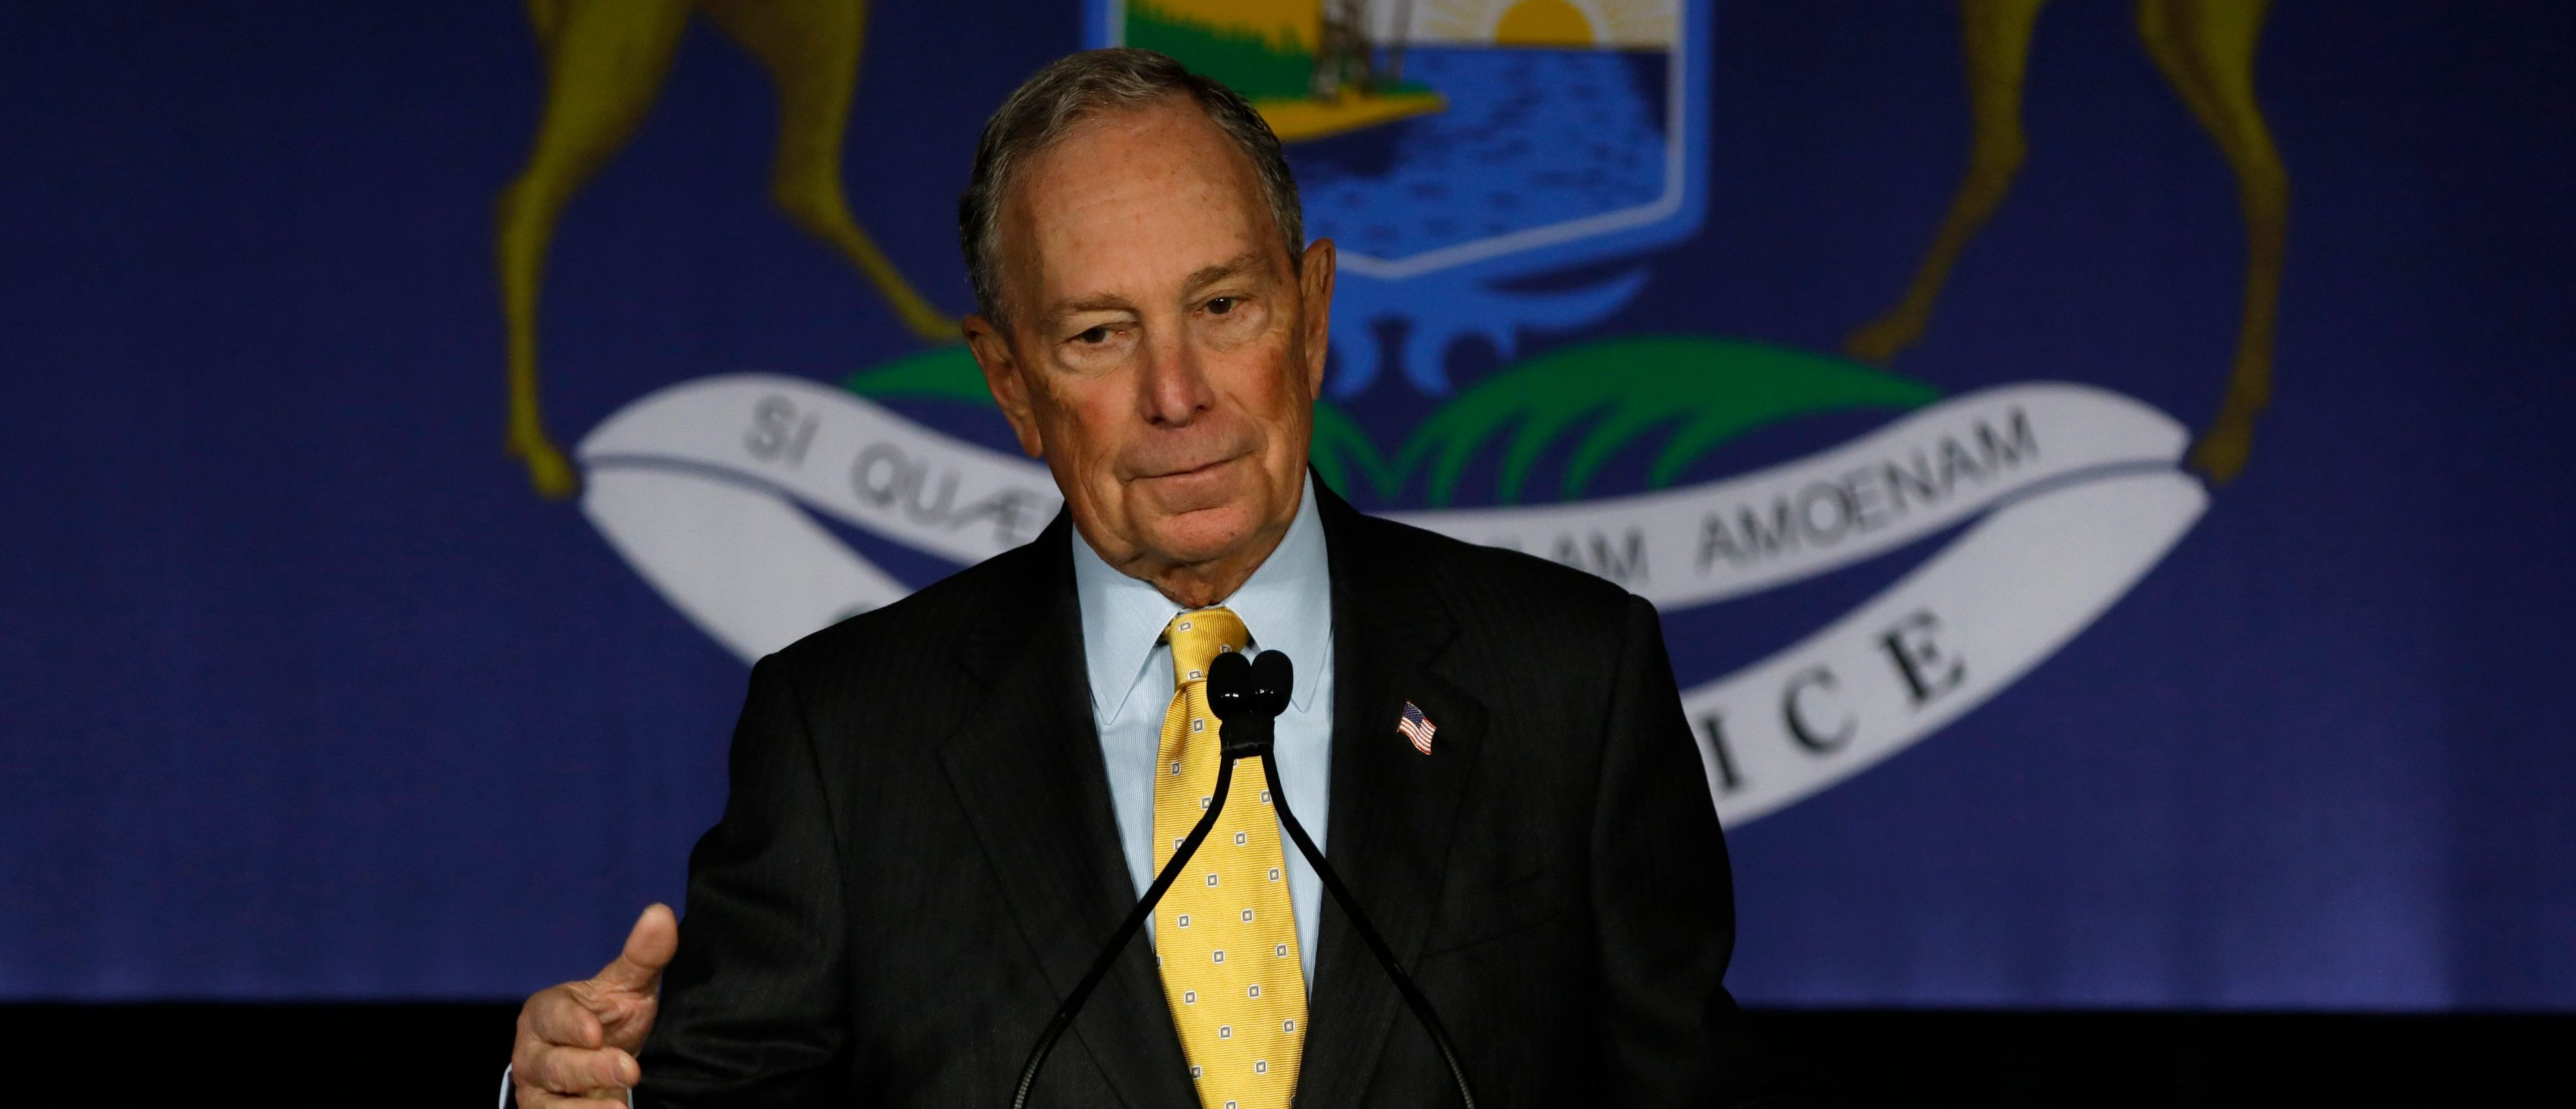 Democratic presidential candidate and former New York Mayor Michael Bloomberg speaks at a campaign stop at Eastern Market in Detroit, Michigan, on February 4, 2020. (JEFF KOWALSKY/AFP via Getty Images)